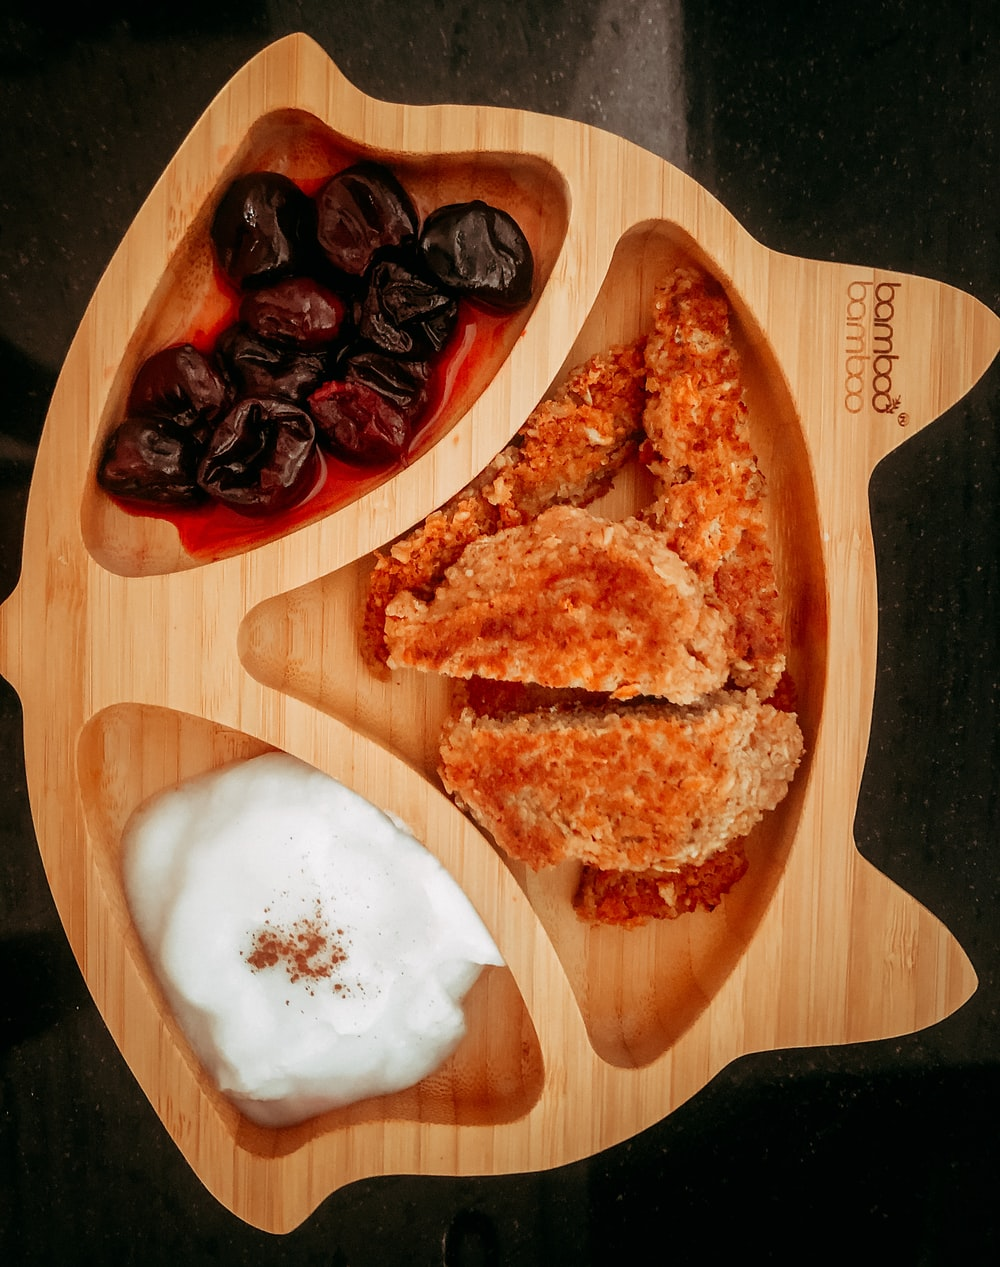 brown bread with white cream on brown wooden chopping board